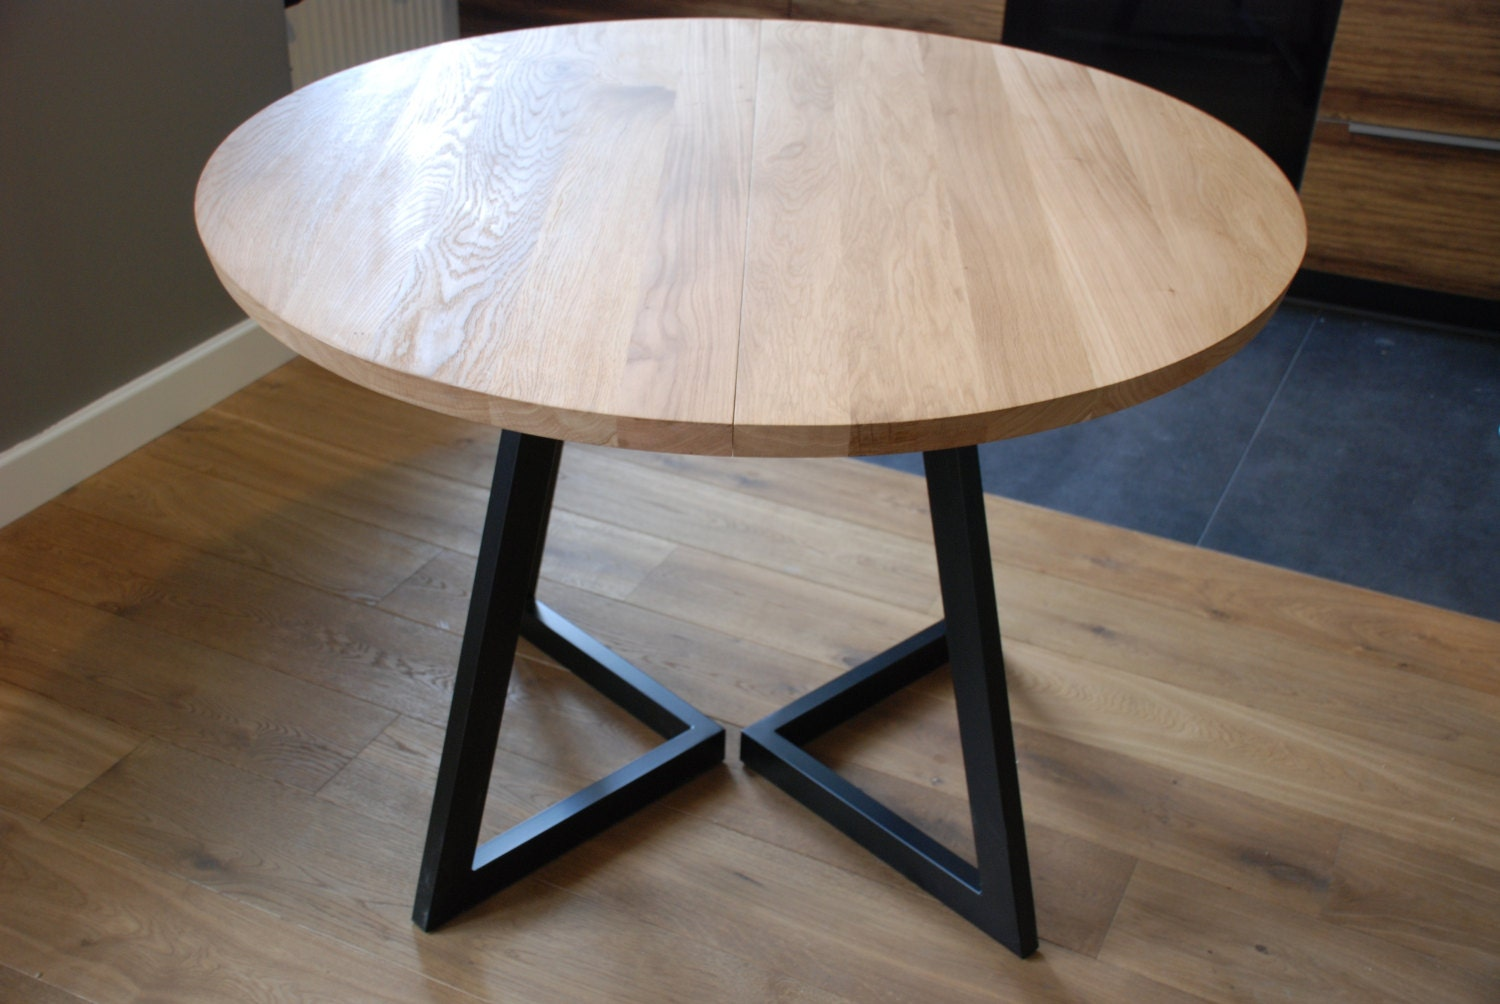 Bois et table ronde rallonges design moderne en acier for Table ronde design avec rallonge